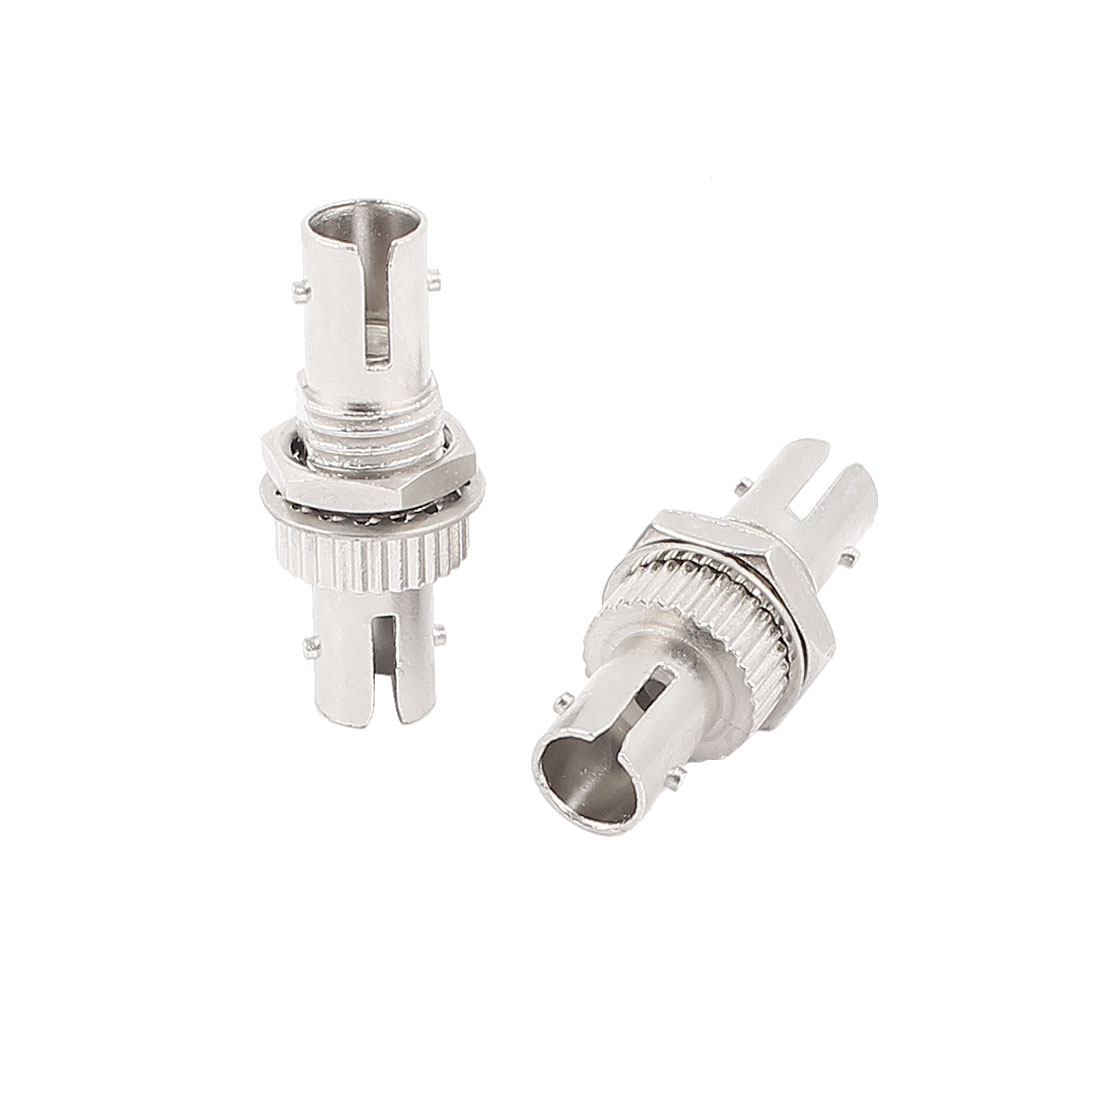 2 Pcs SM/MM ST Flange Connectors Fibre Couplers Optical Fiber Adapters